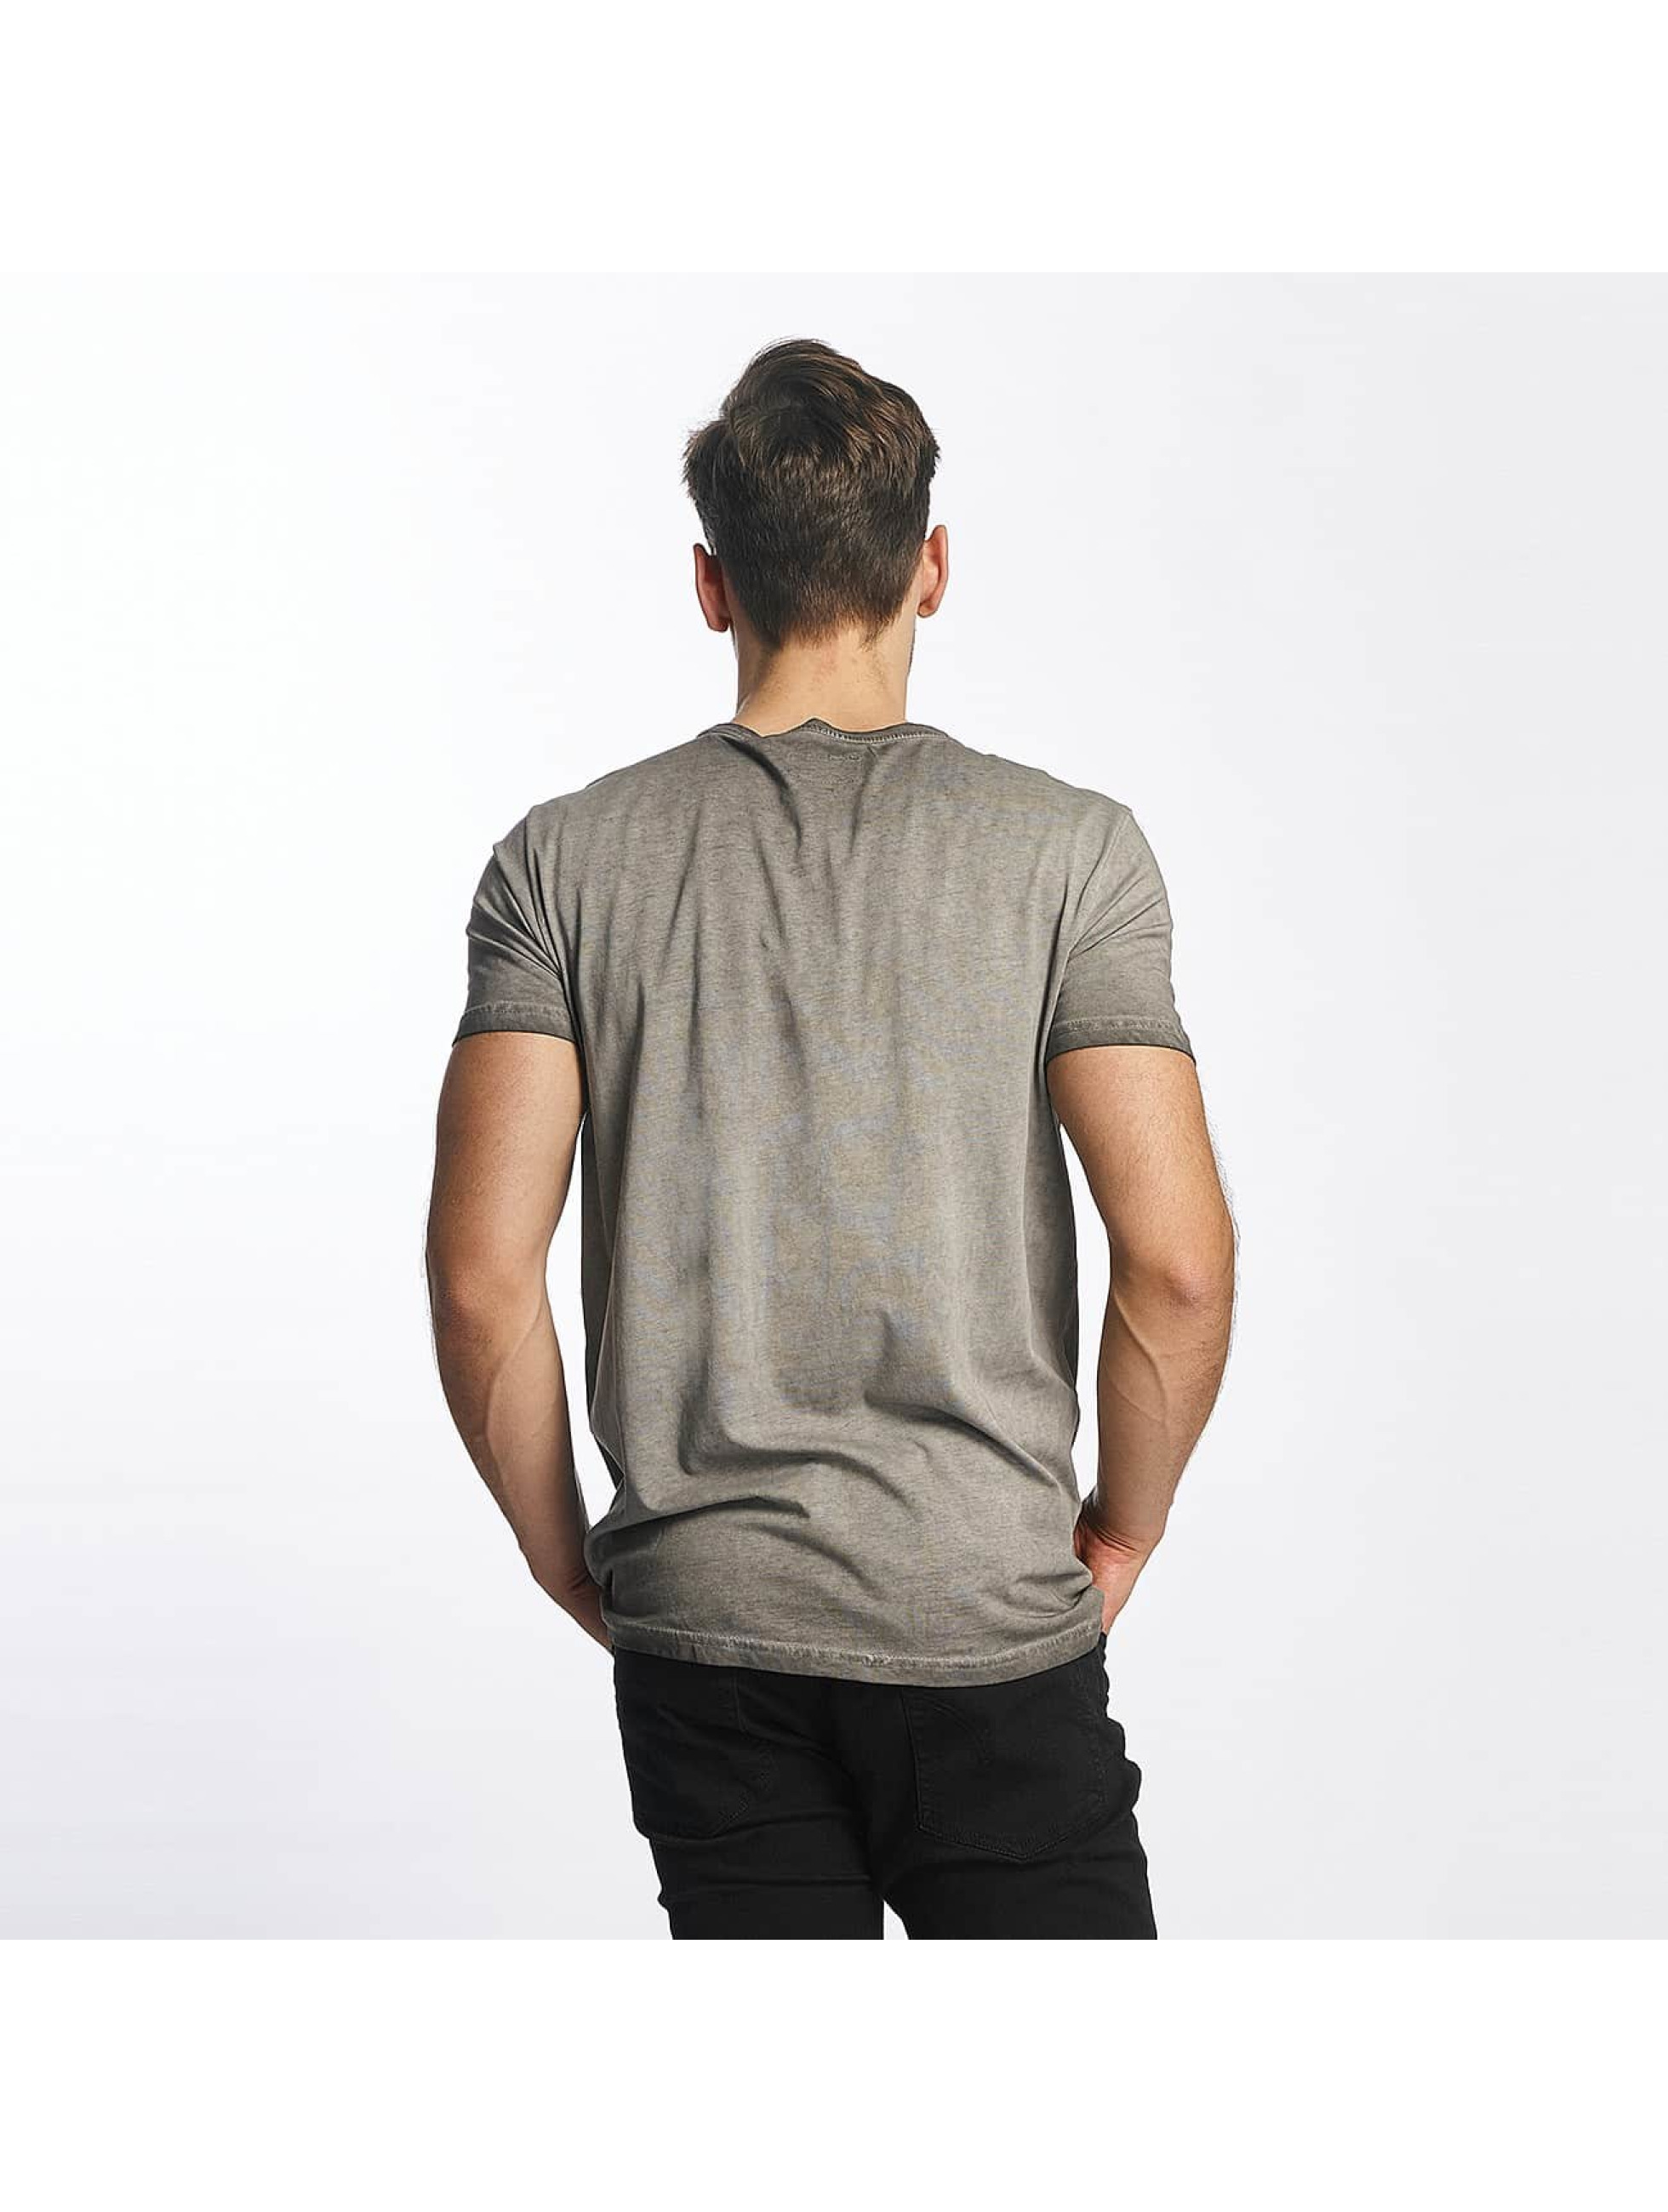 SHINE Original T-Shirt Oil Washed Printed grey